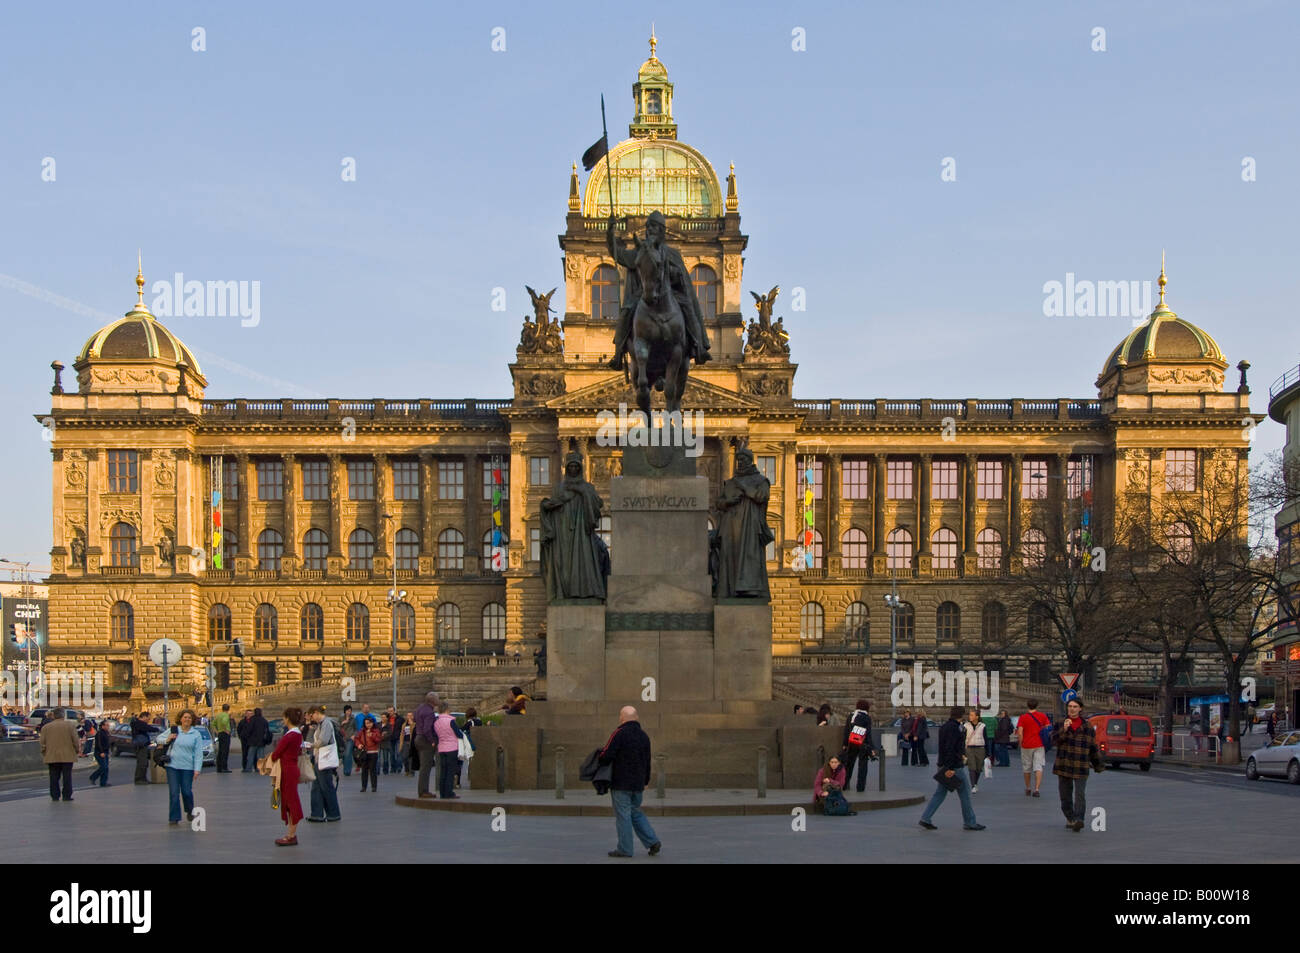 The Wenceslas Monument and tourists in front of the main building of the National Museum in Prague. - Stock Image